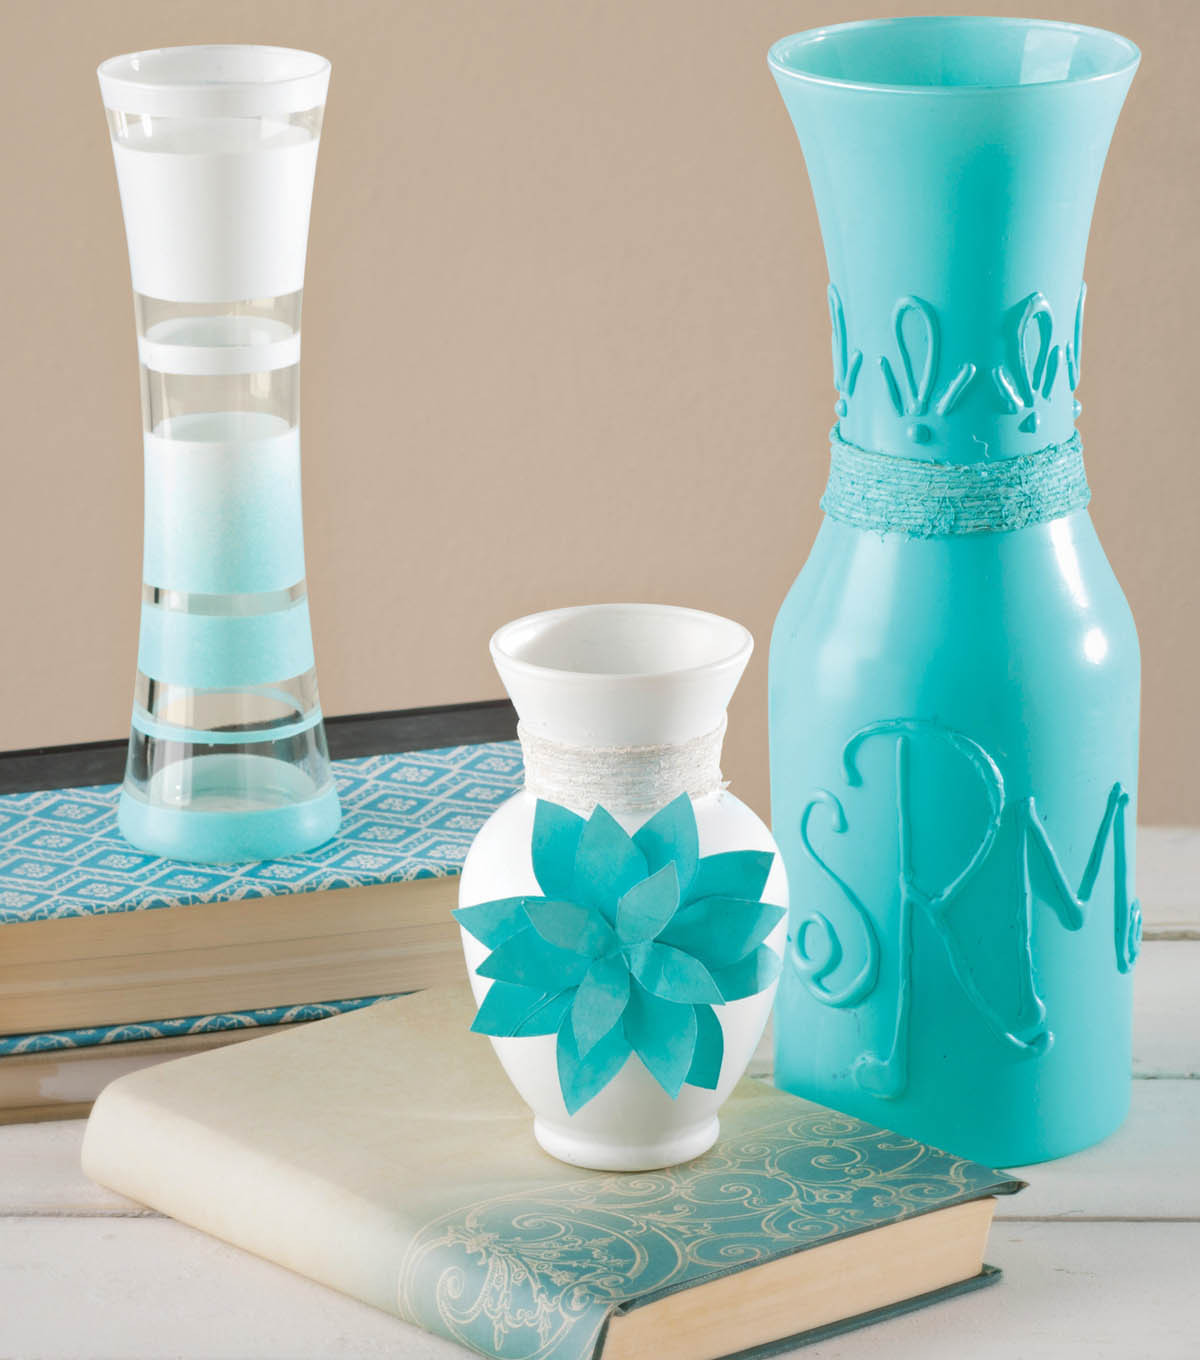 Paint and Embellished Vases